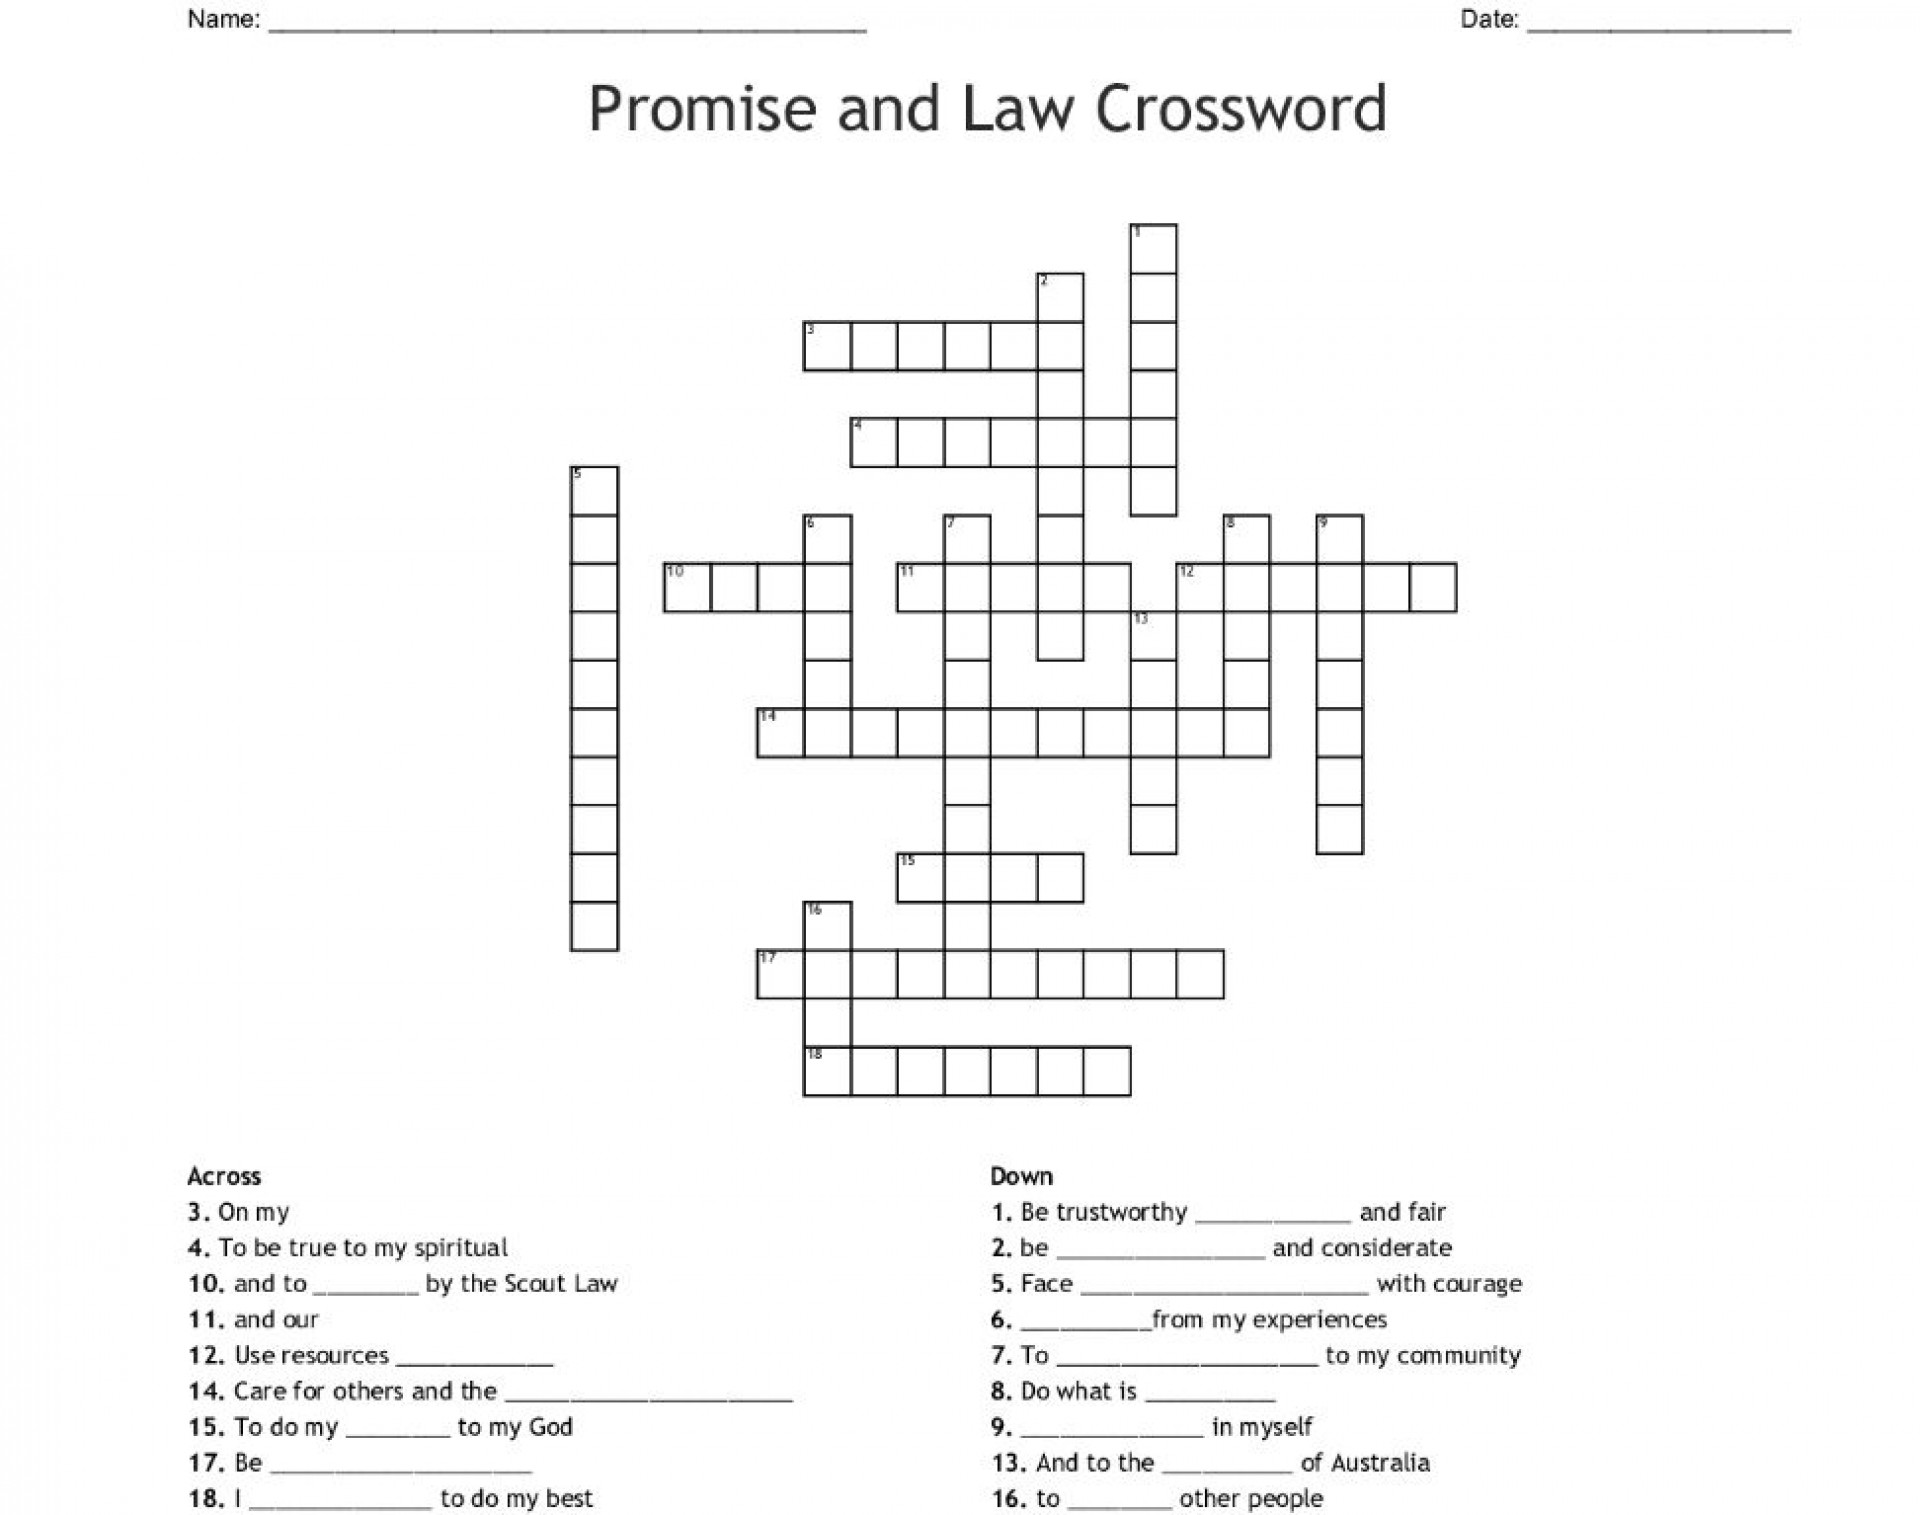 003 Fascinating Promise Crossword Clue High Resolution  Go Back On A 6 Letter 3 Of Marriage 91920